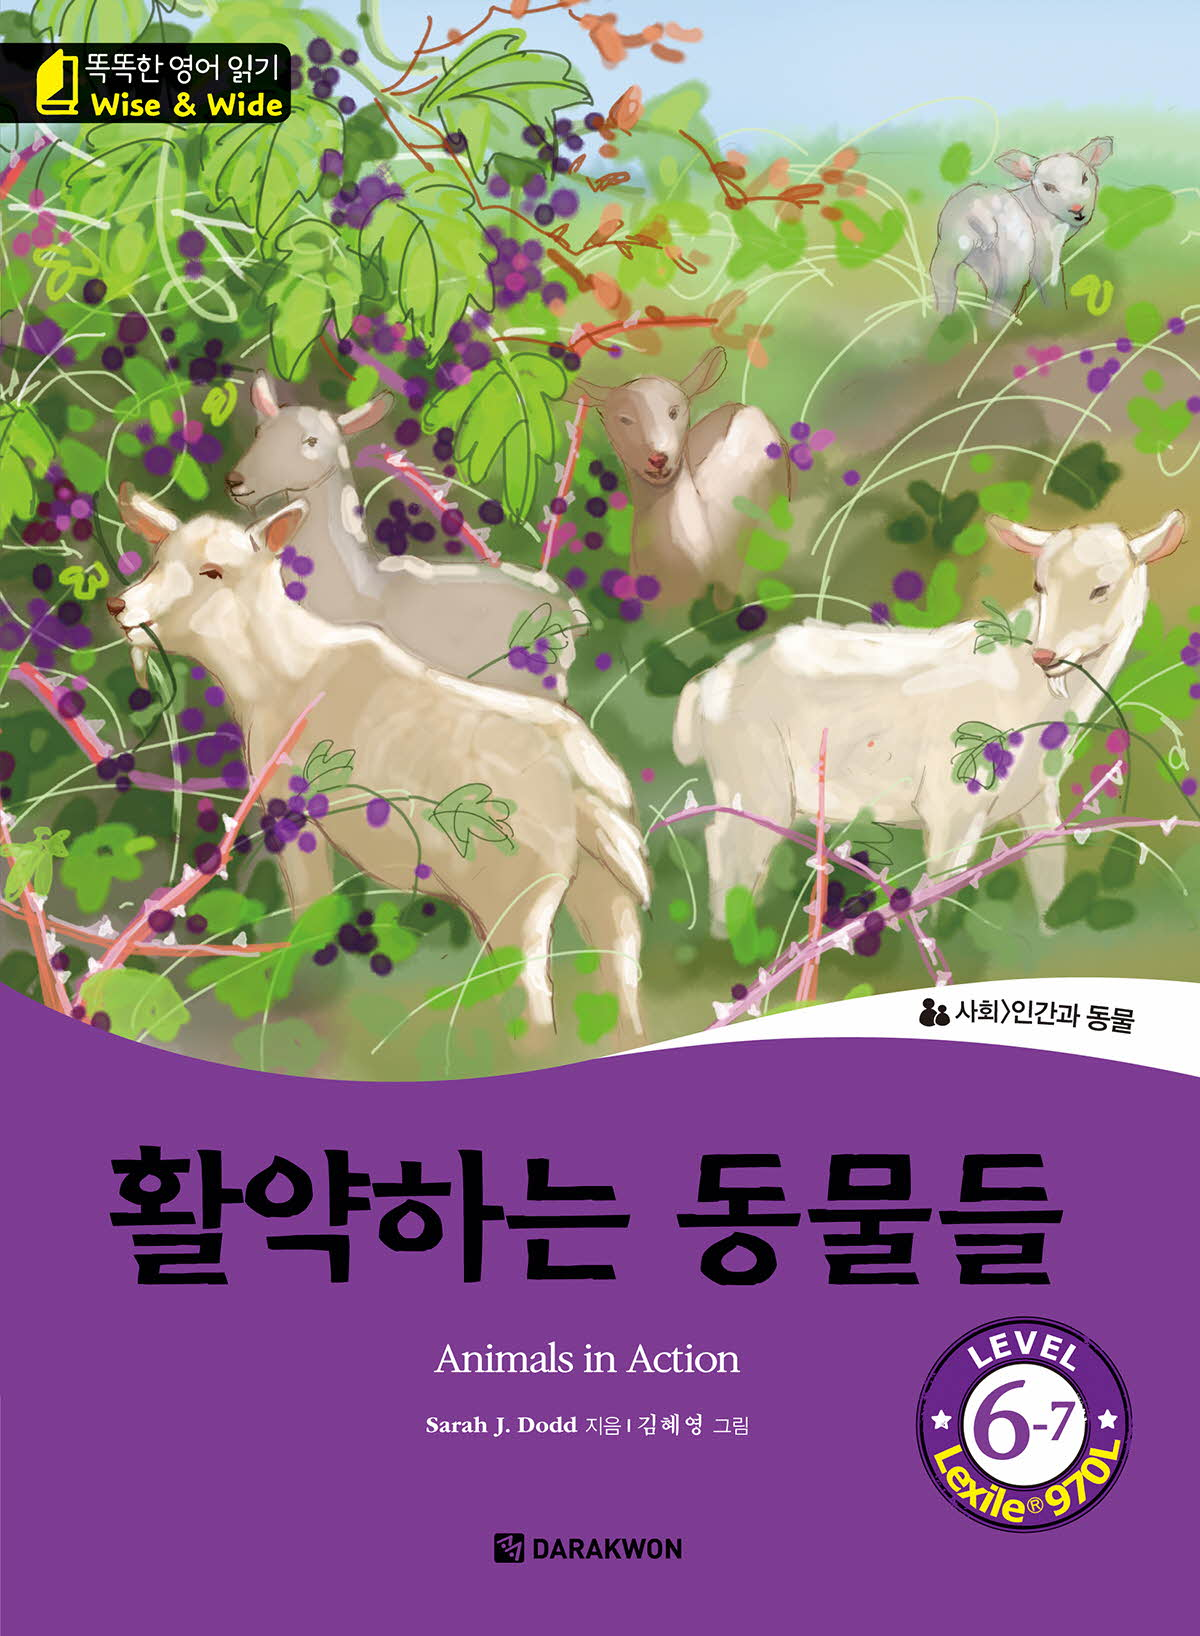 <a href='contents.php?CS_CODE=CS201803120057'>활약하는 동물들 (Animals in Action)</a> 책표지